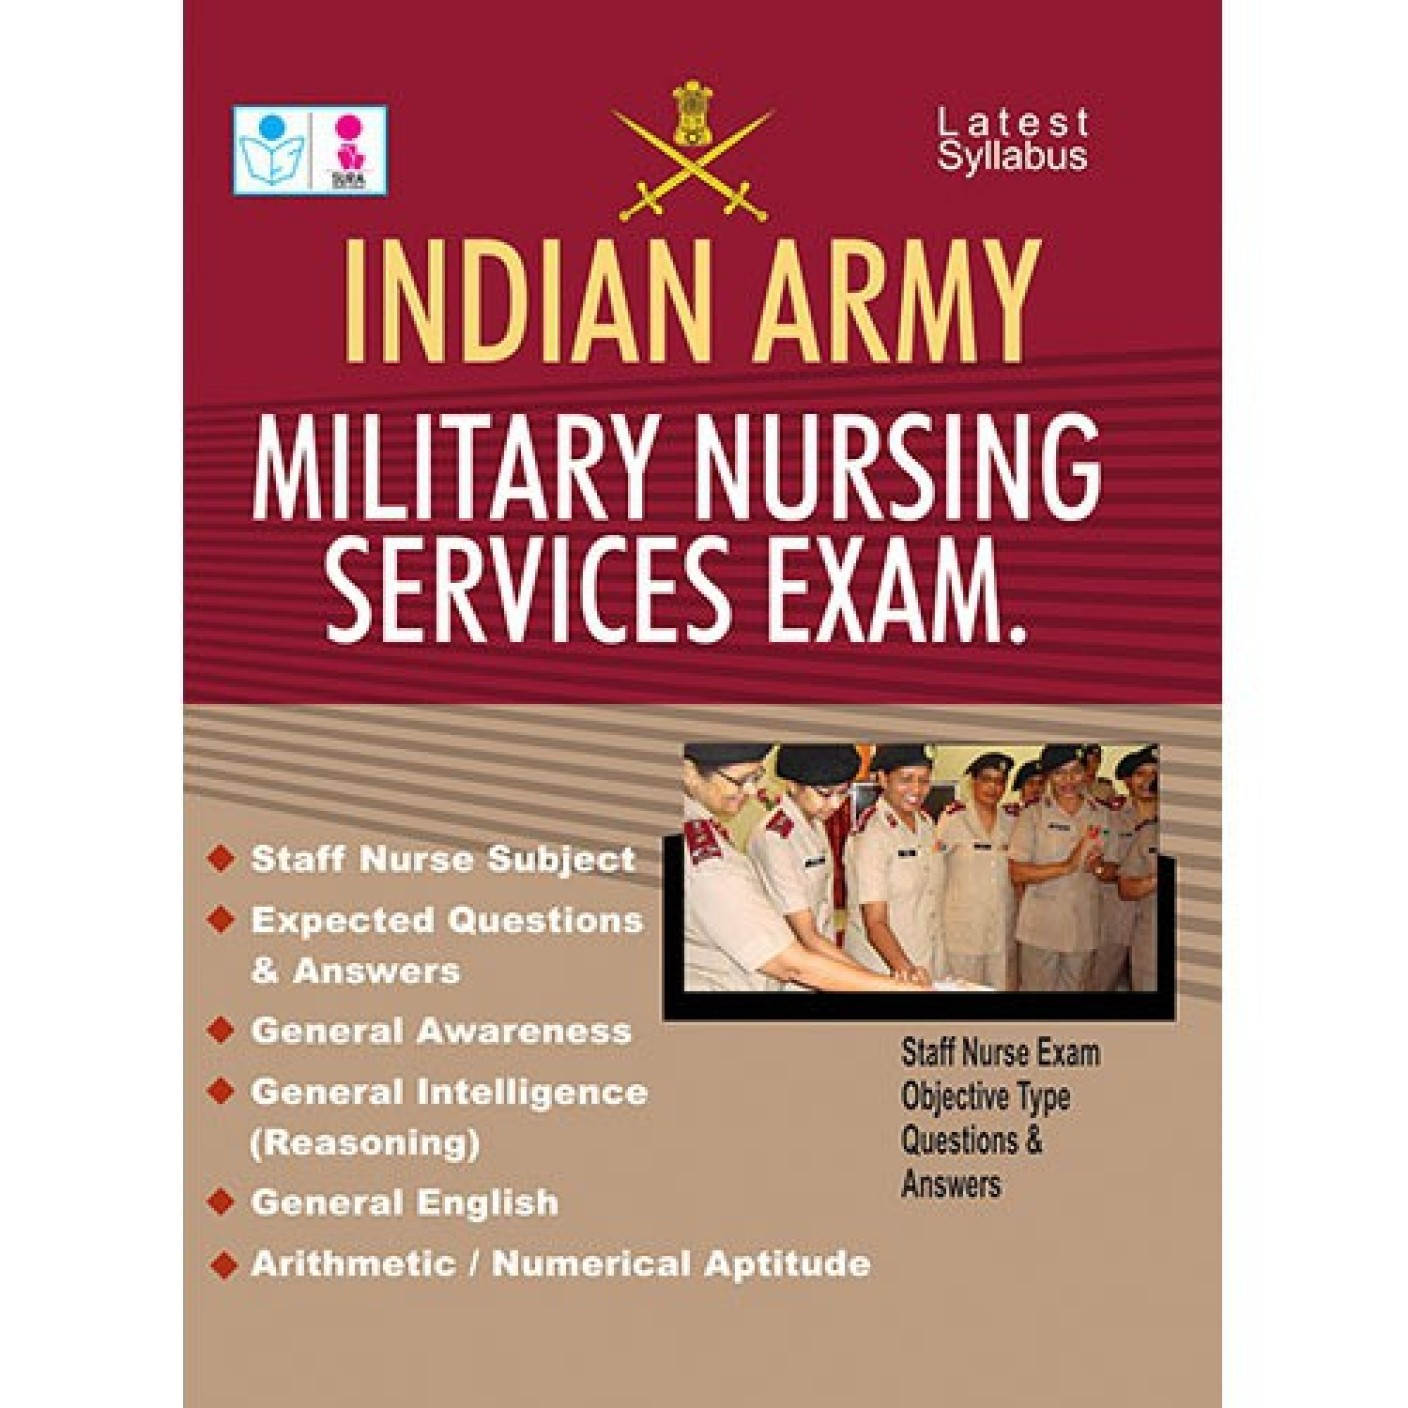 objective type questions and answers for staff nurse exam pdf